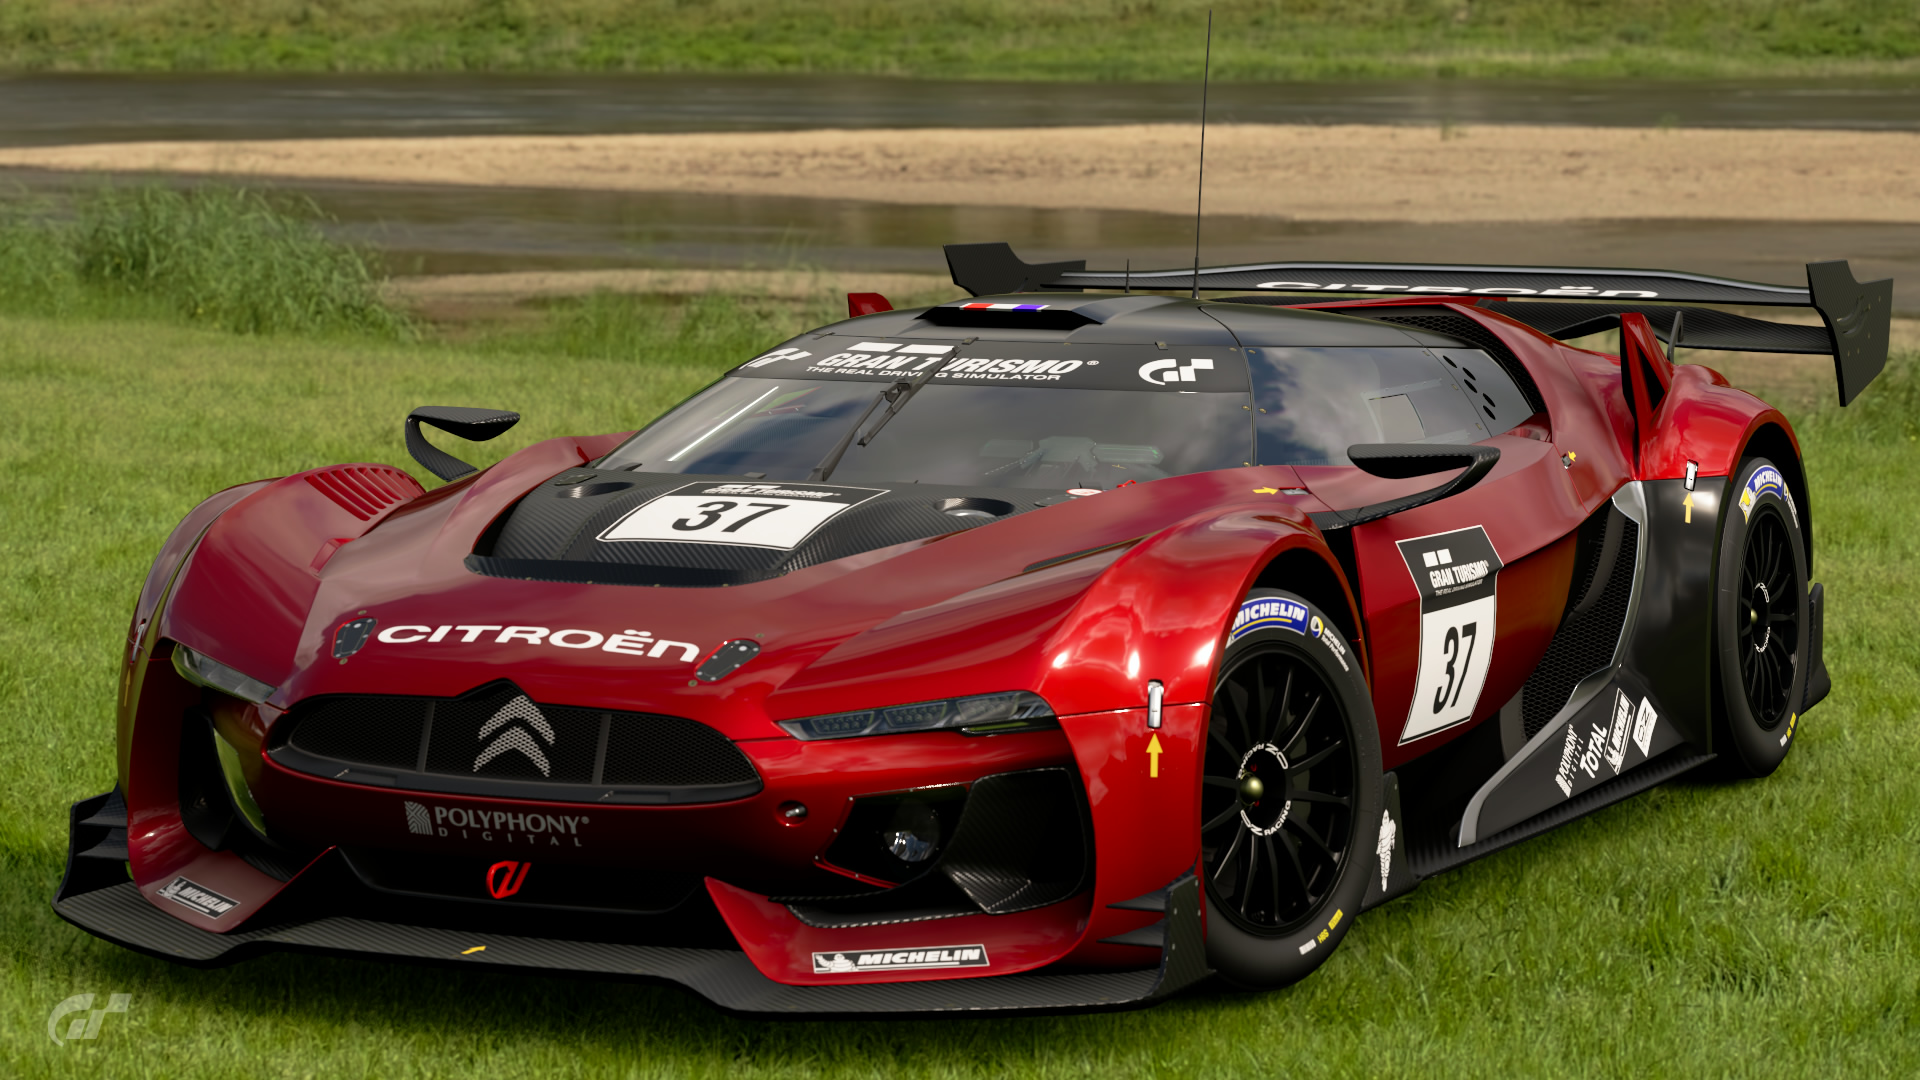 gt by citro n race car gr 3 gran turismo wiki fandom powered by wikia. Black Bedroom Furniture Sets. Home Design Ideas